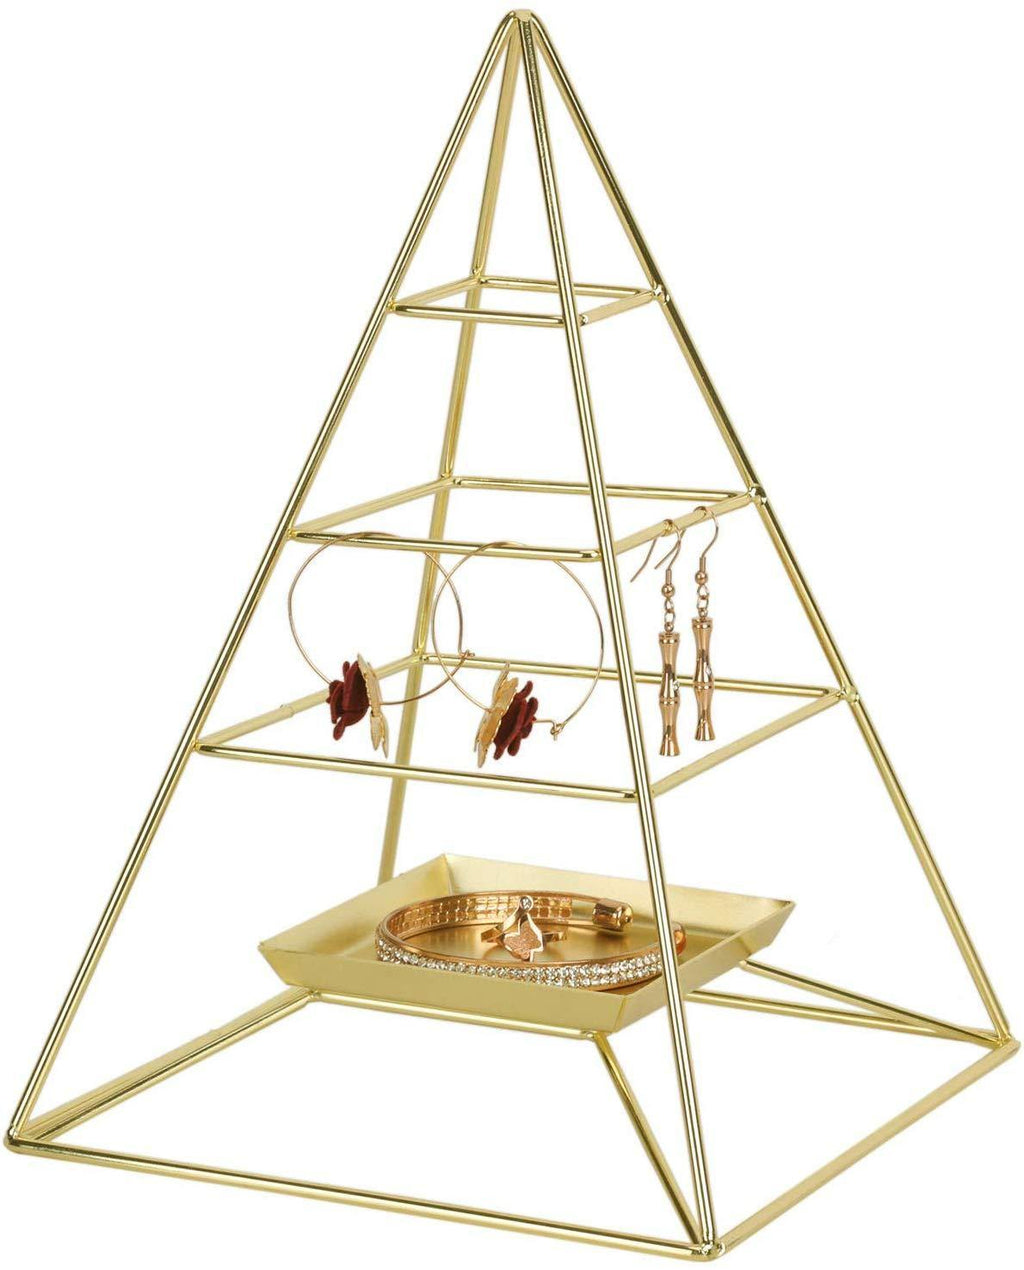 3 Tier Pyramid Hanging Jewelry Organizer - Shop Ja'Kai